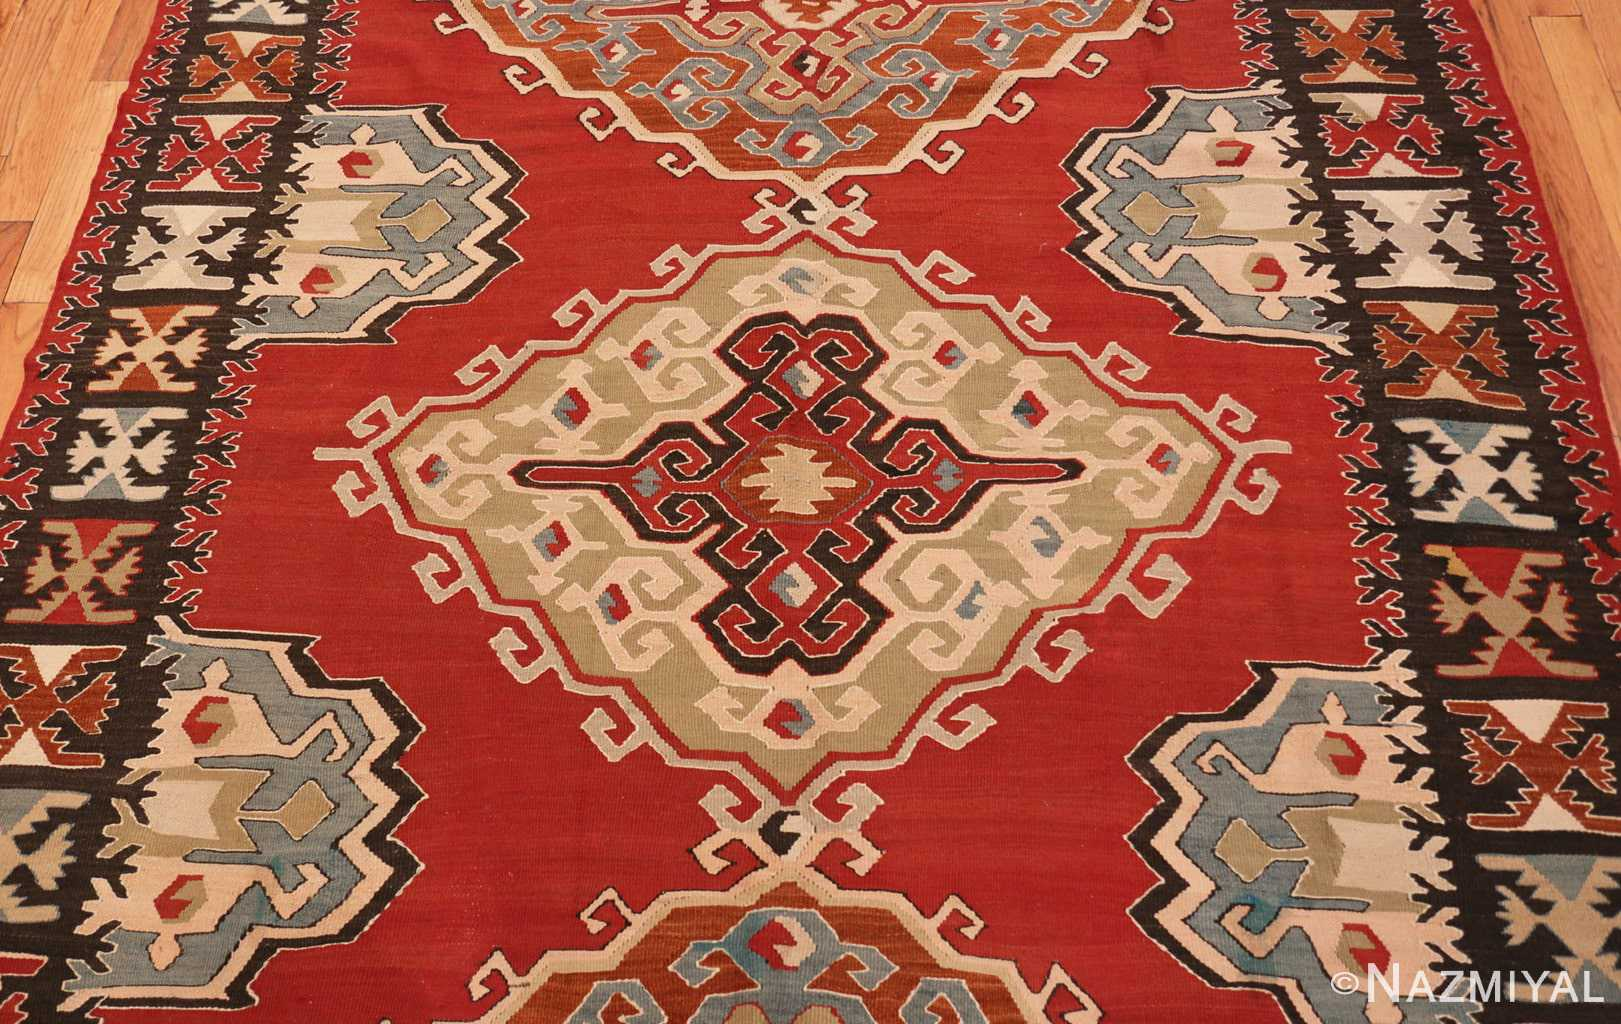 Red Background Vintage Tribal Turkish Kilim Rug 50636 Nazmiyal